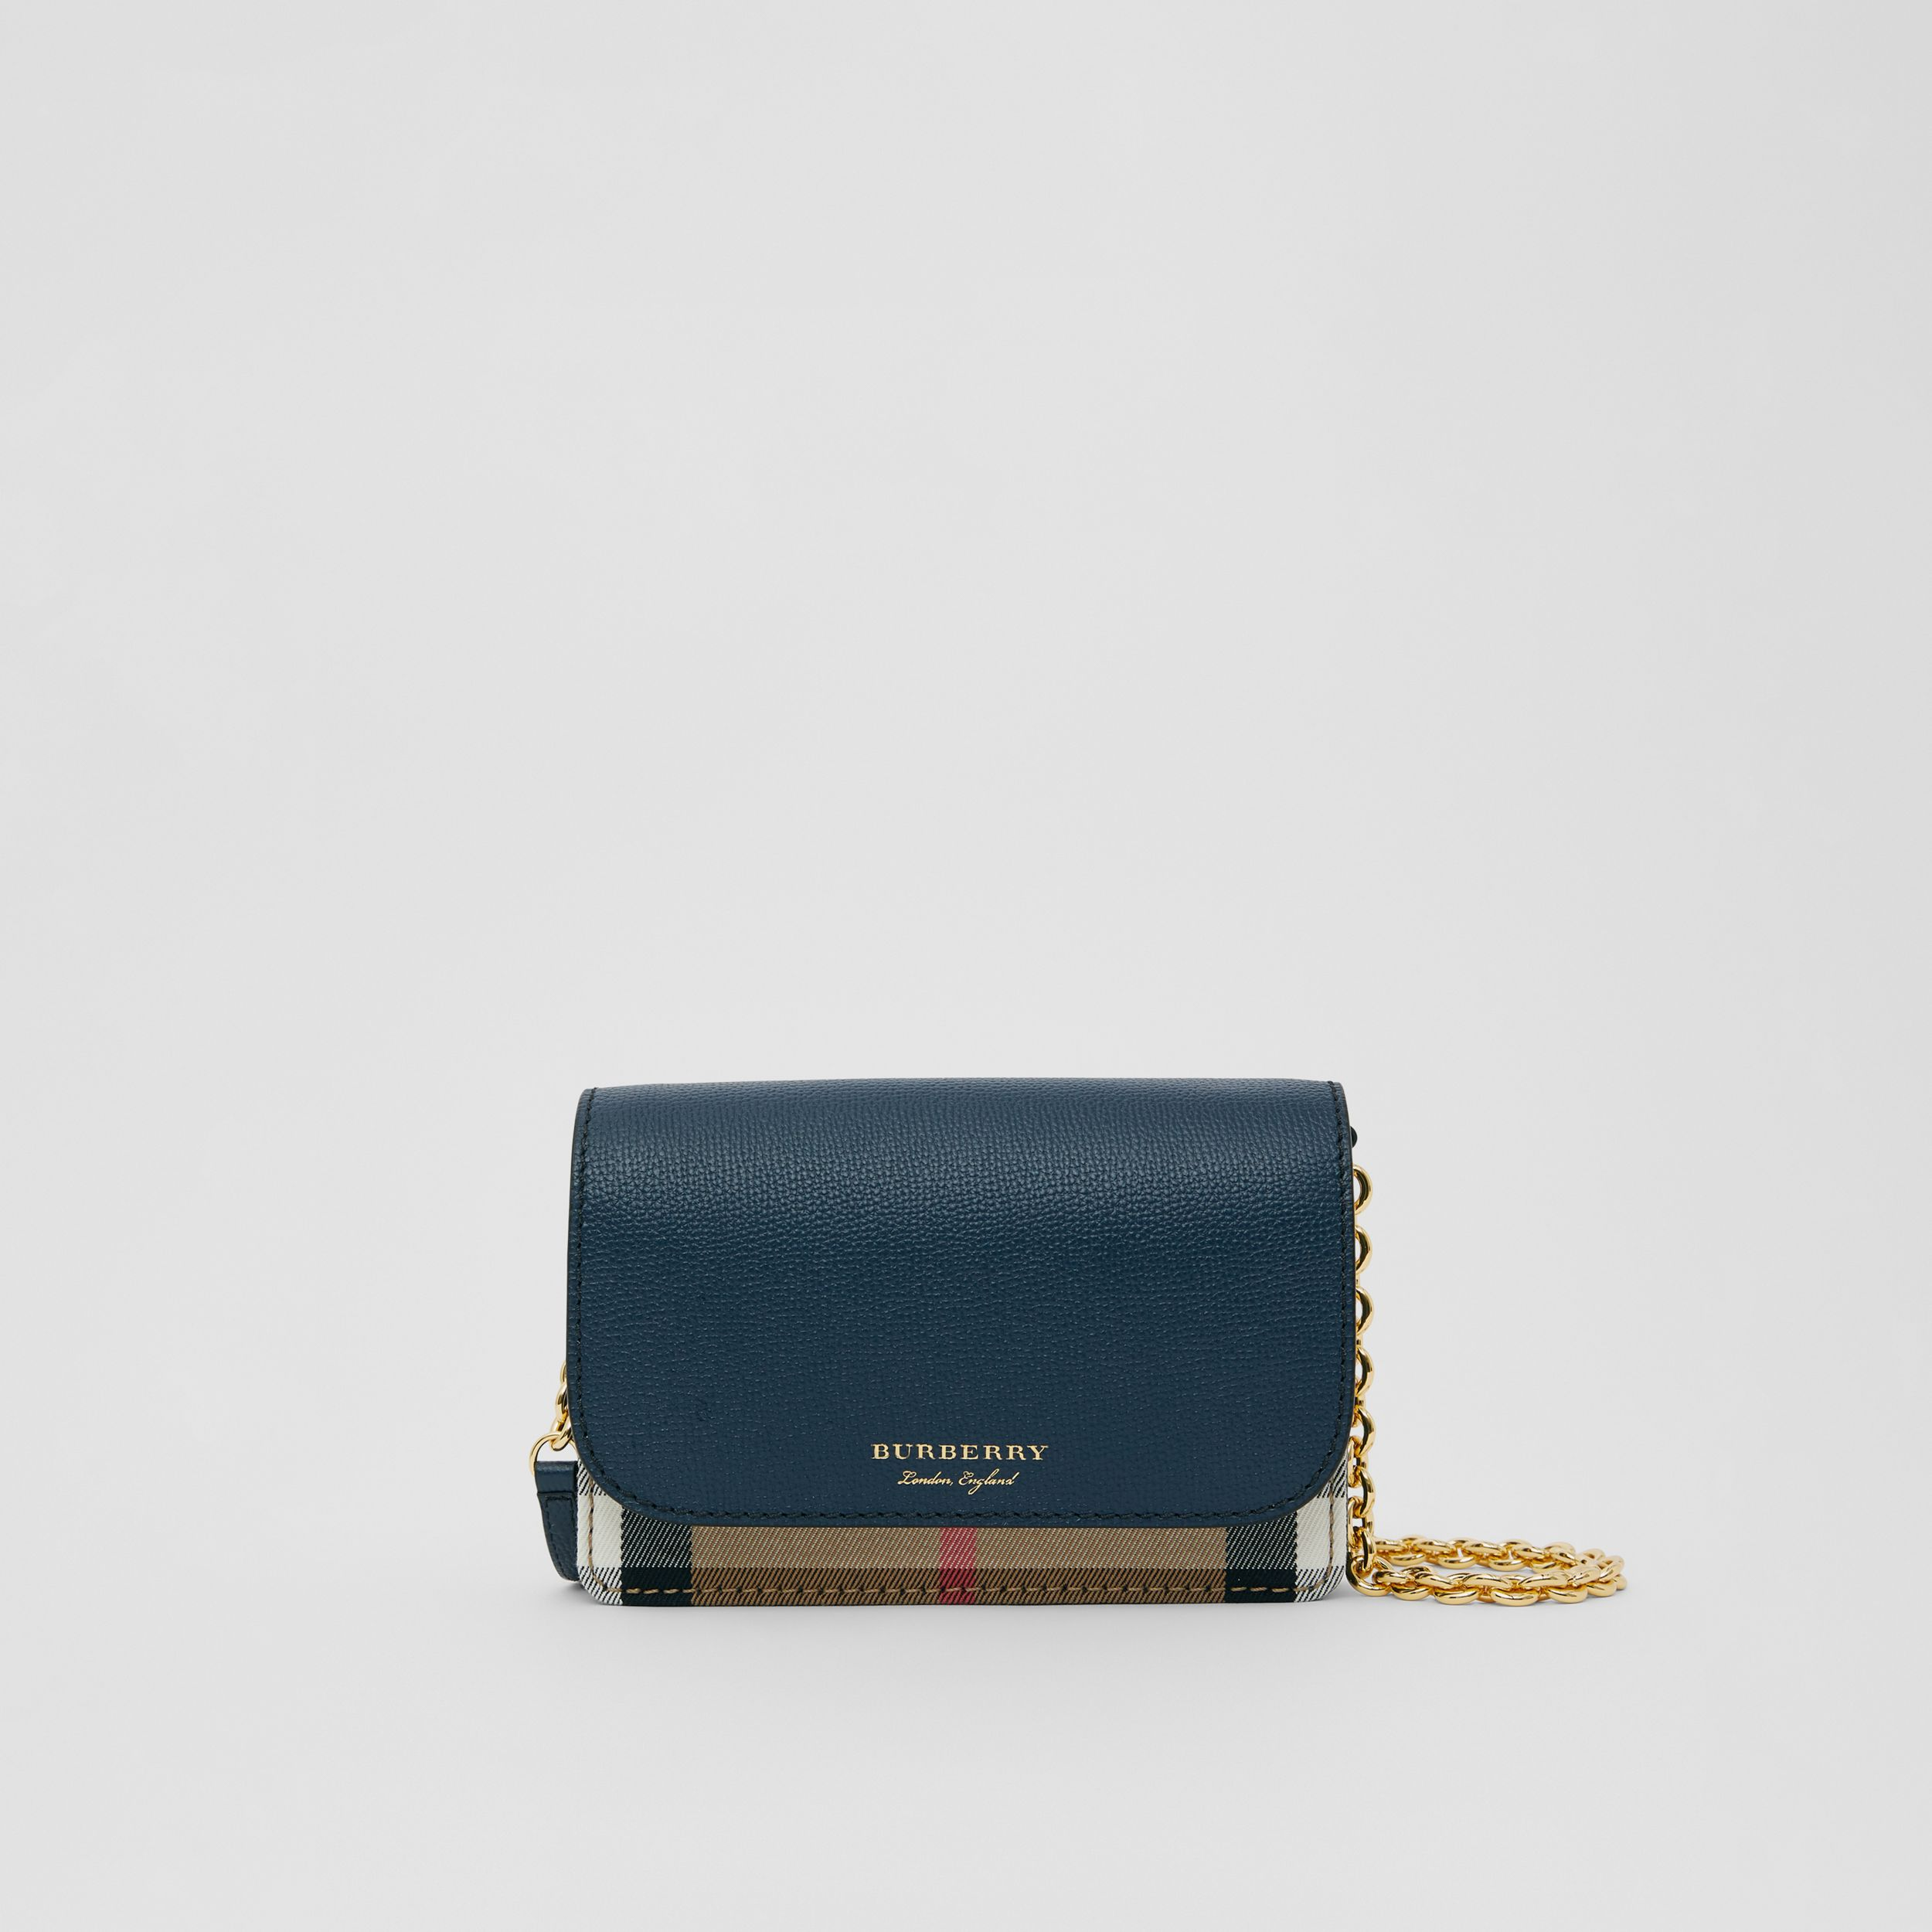 Small Leather and House Check Crossbody Bag in Ink Blue - Women | Burberry - 1